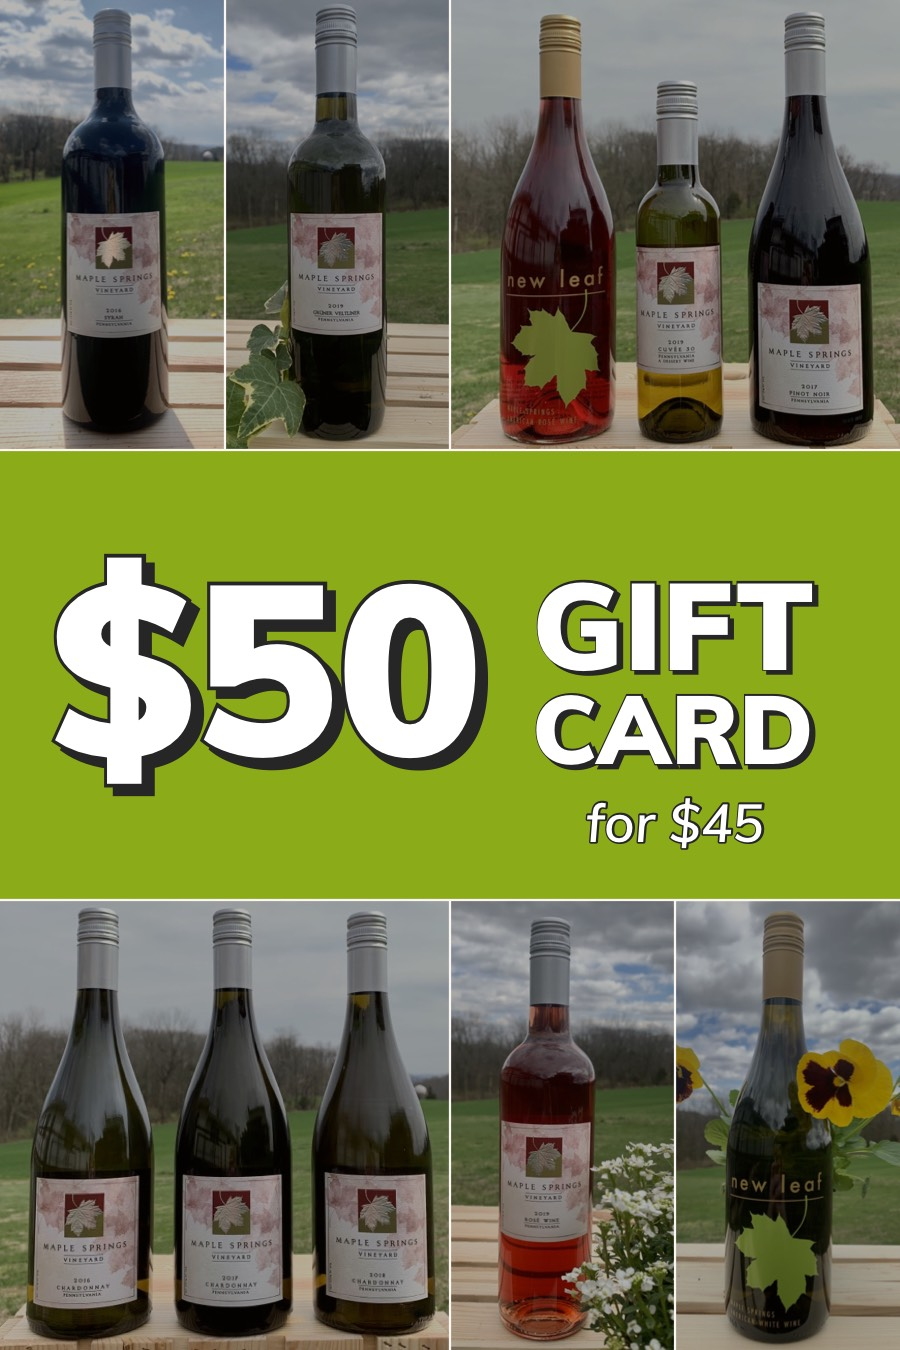 Product Image for Gift Card - $50